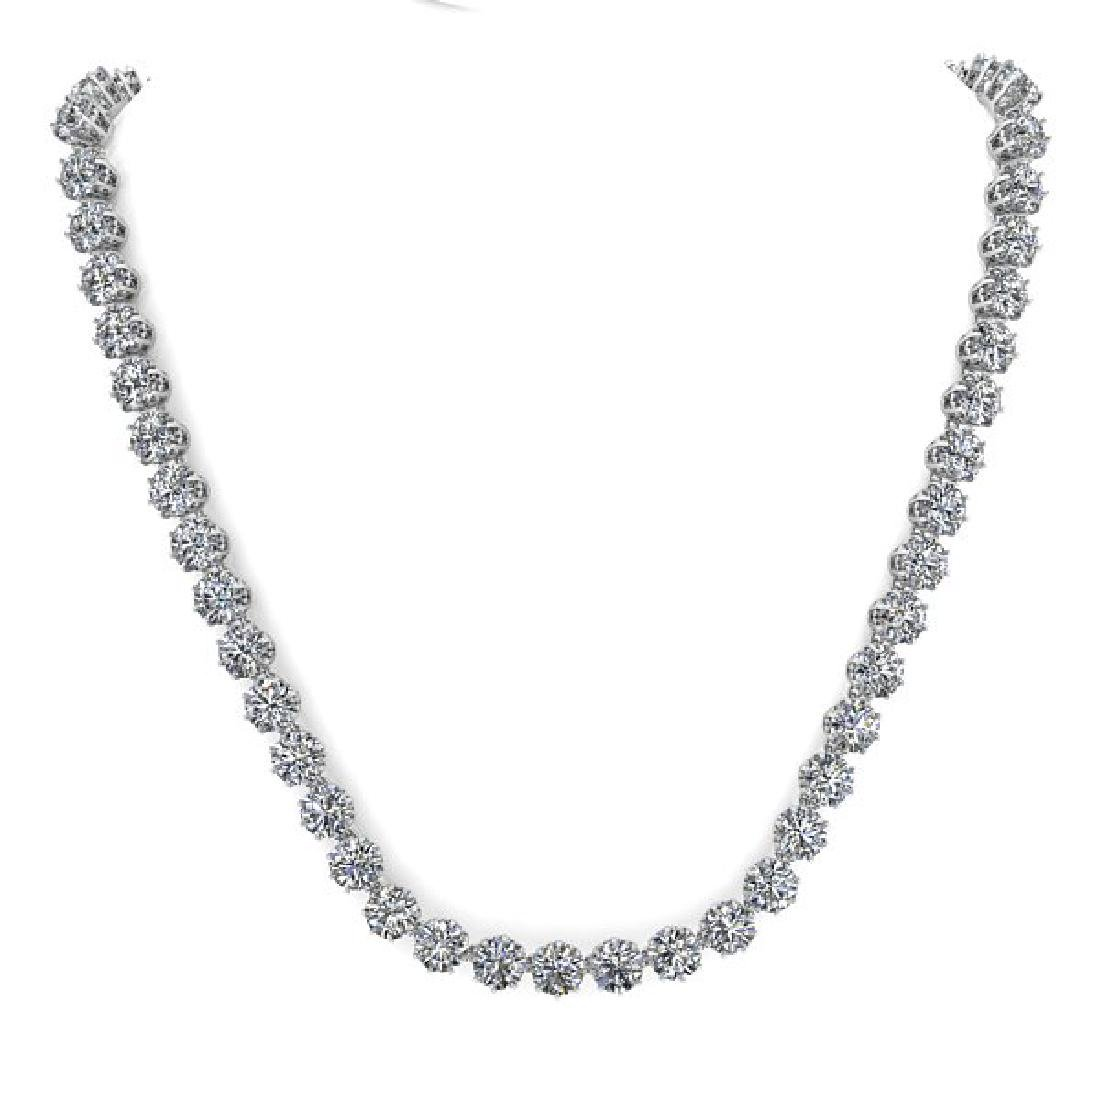 30 CTW SI Certified Diamond Necklace 14K White Gold - 2